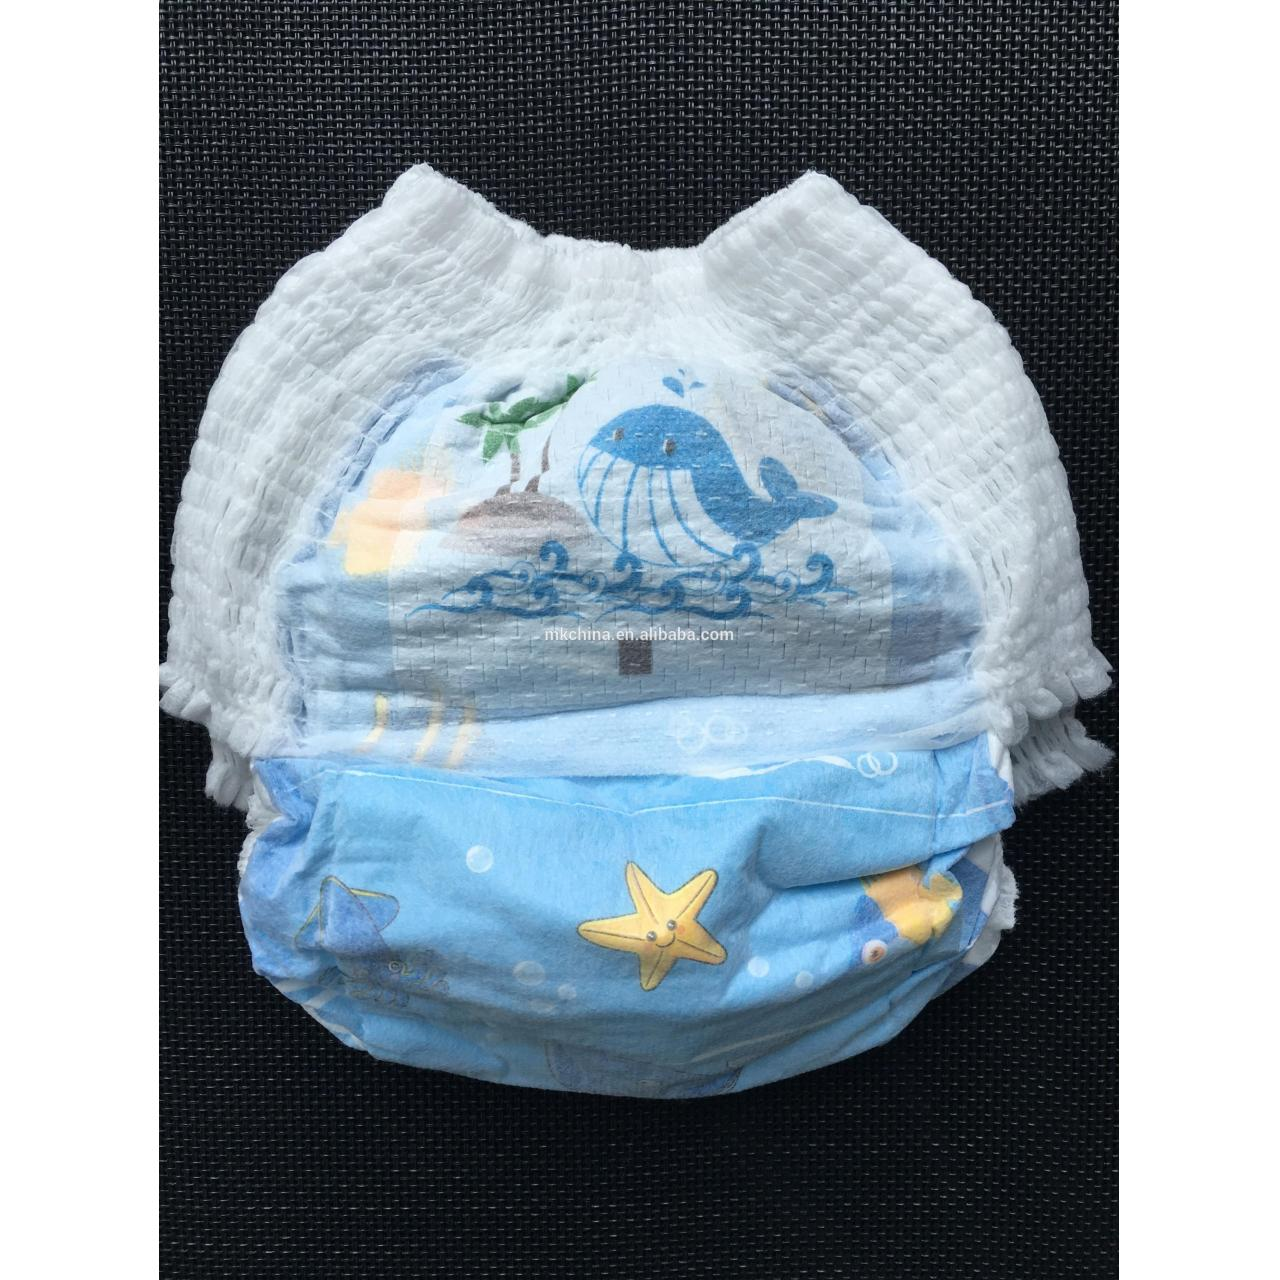 Wholesale free samples feminine cotton women sanitary napkin japan sanitary pads for women from china suppliers